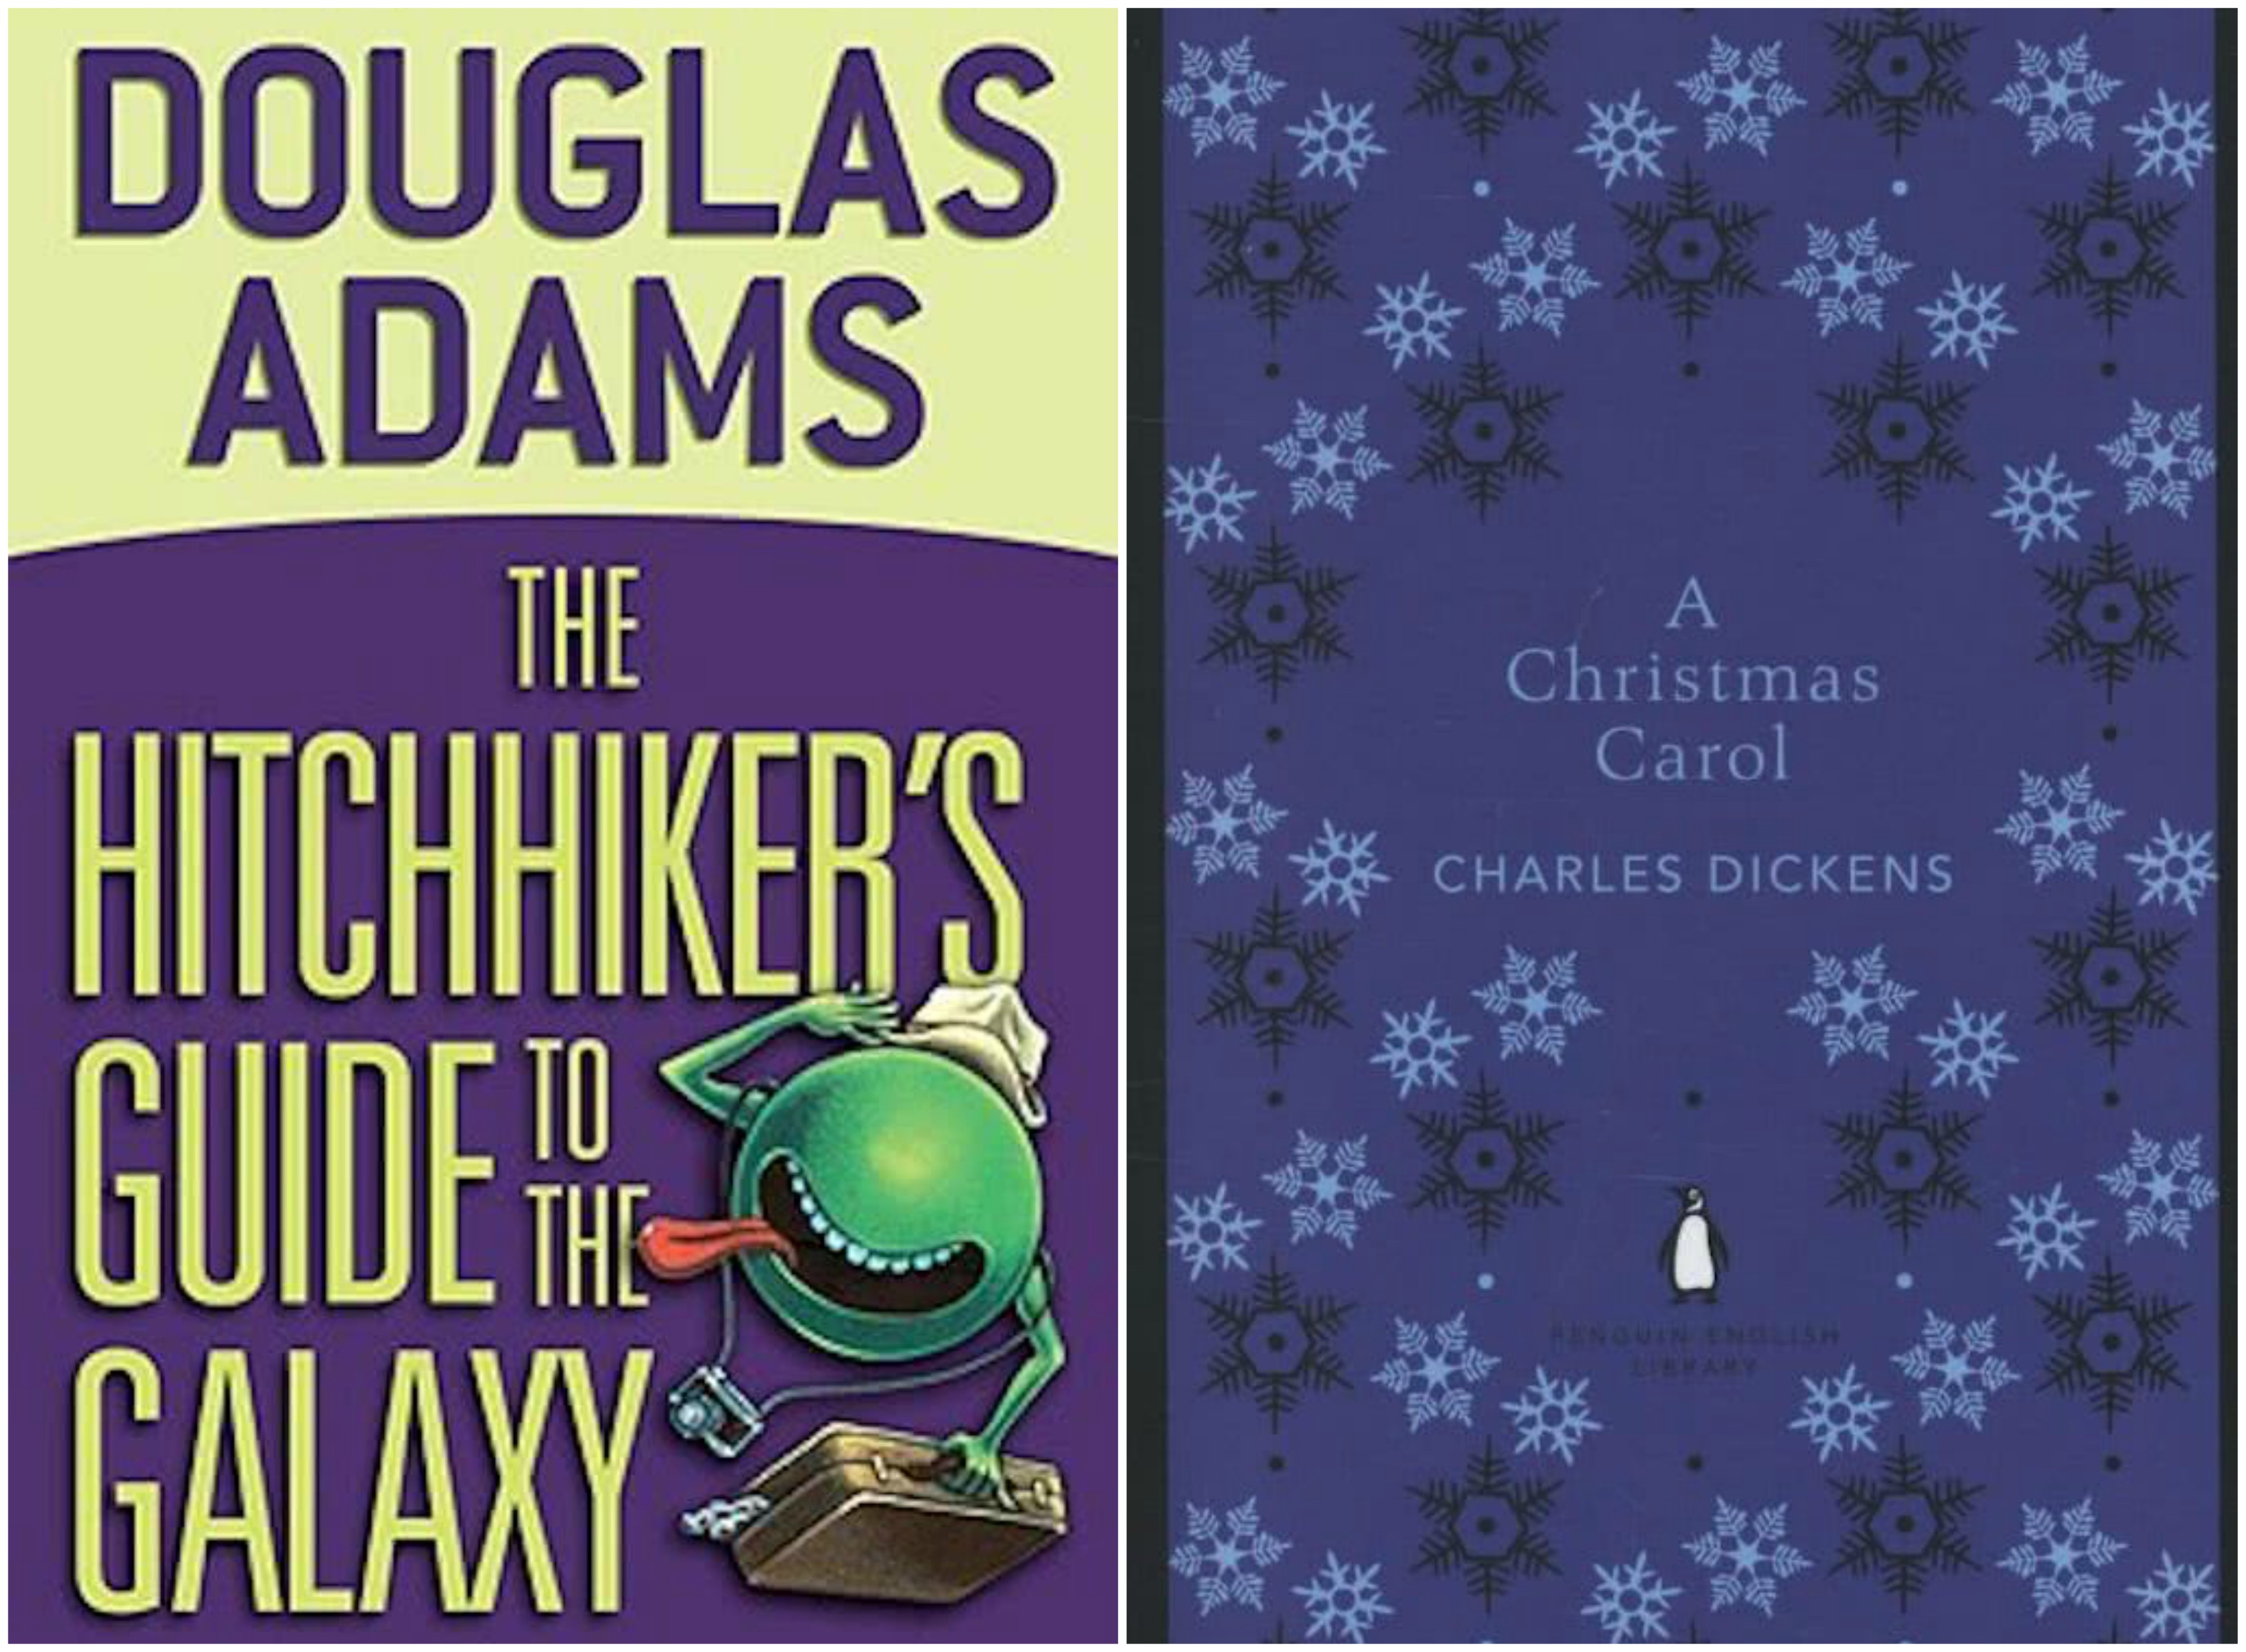 The Hitchhiker's guide & A Christmas Carol